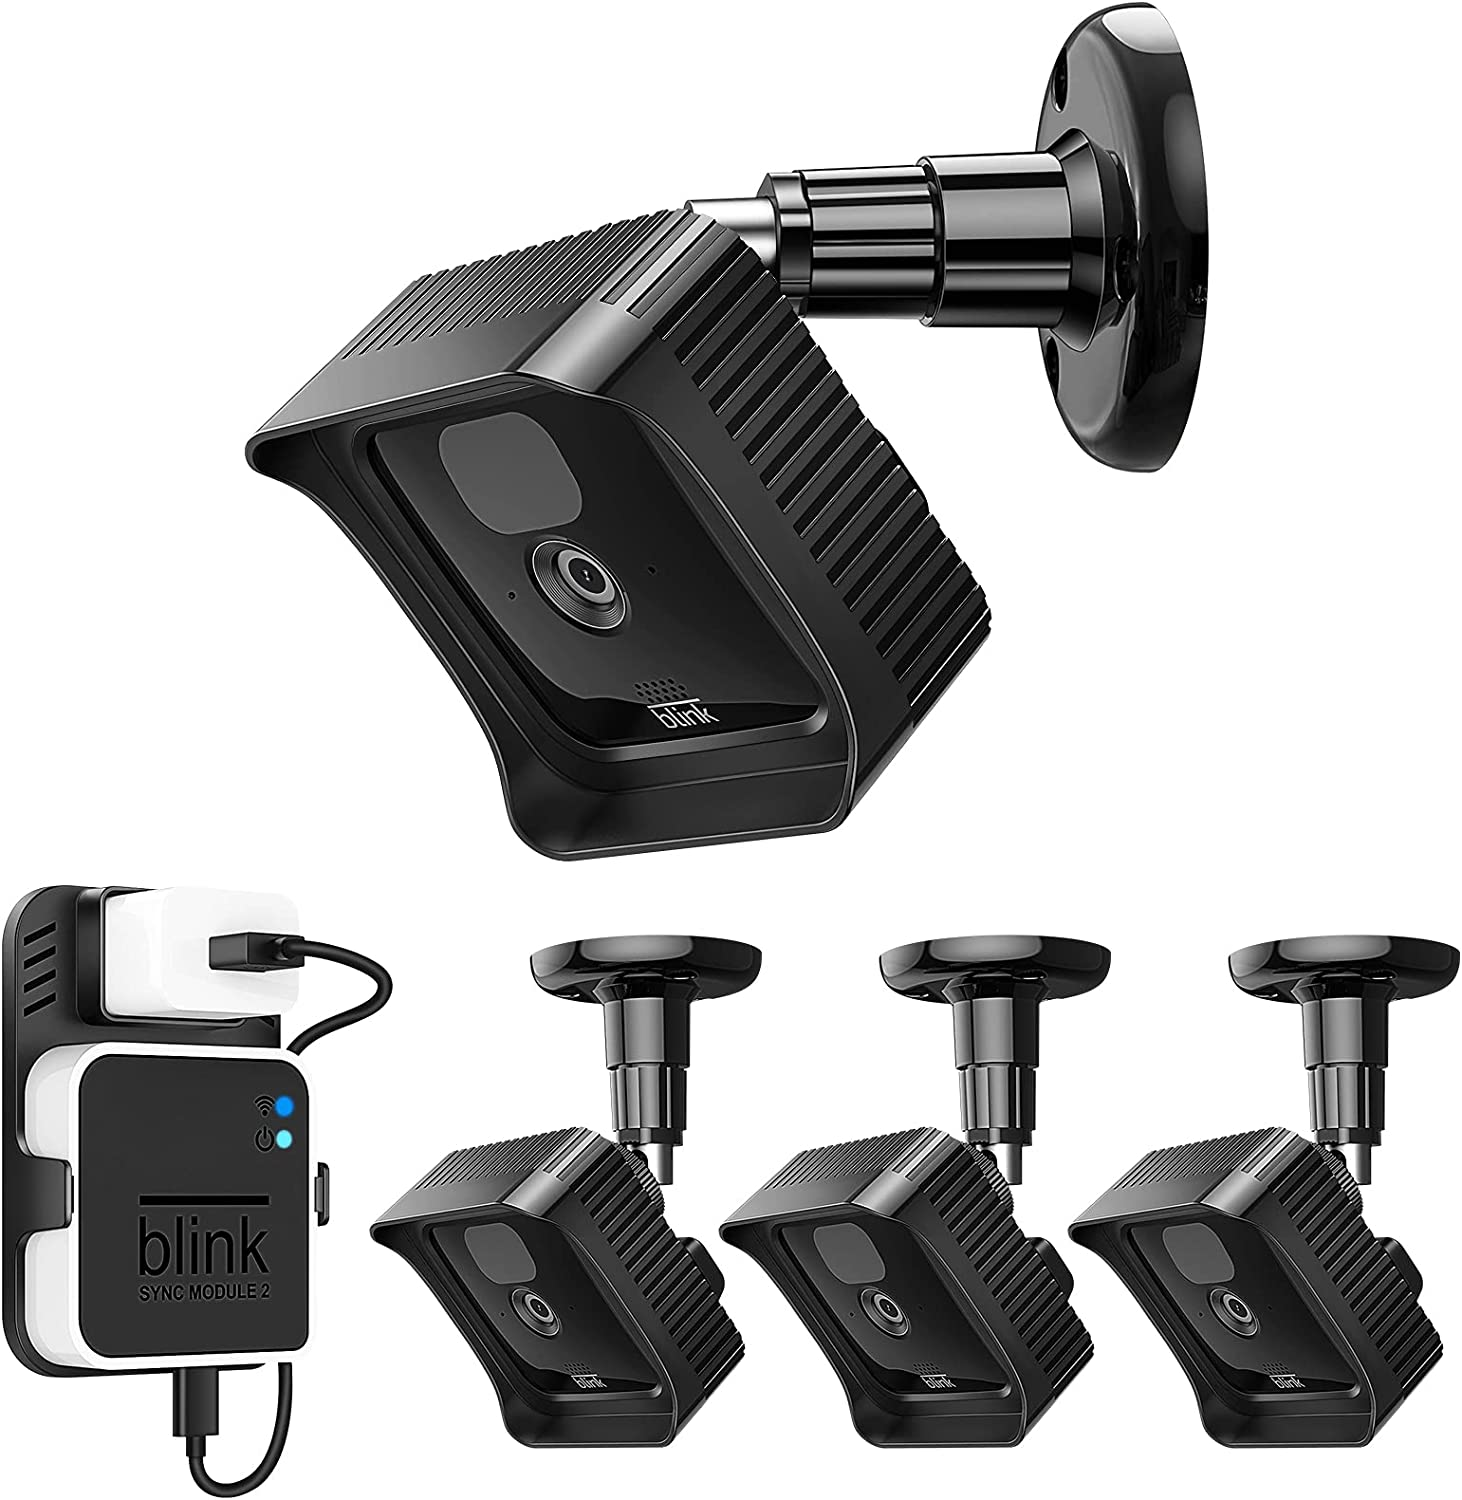 Fintie Wall Mounts and Housing for All-New Blink Outdoor Camera, Adjustable Bracket and Case with Blink Sync Module 2 Outlet Mount for Blink Camera Security